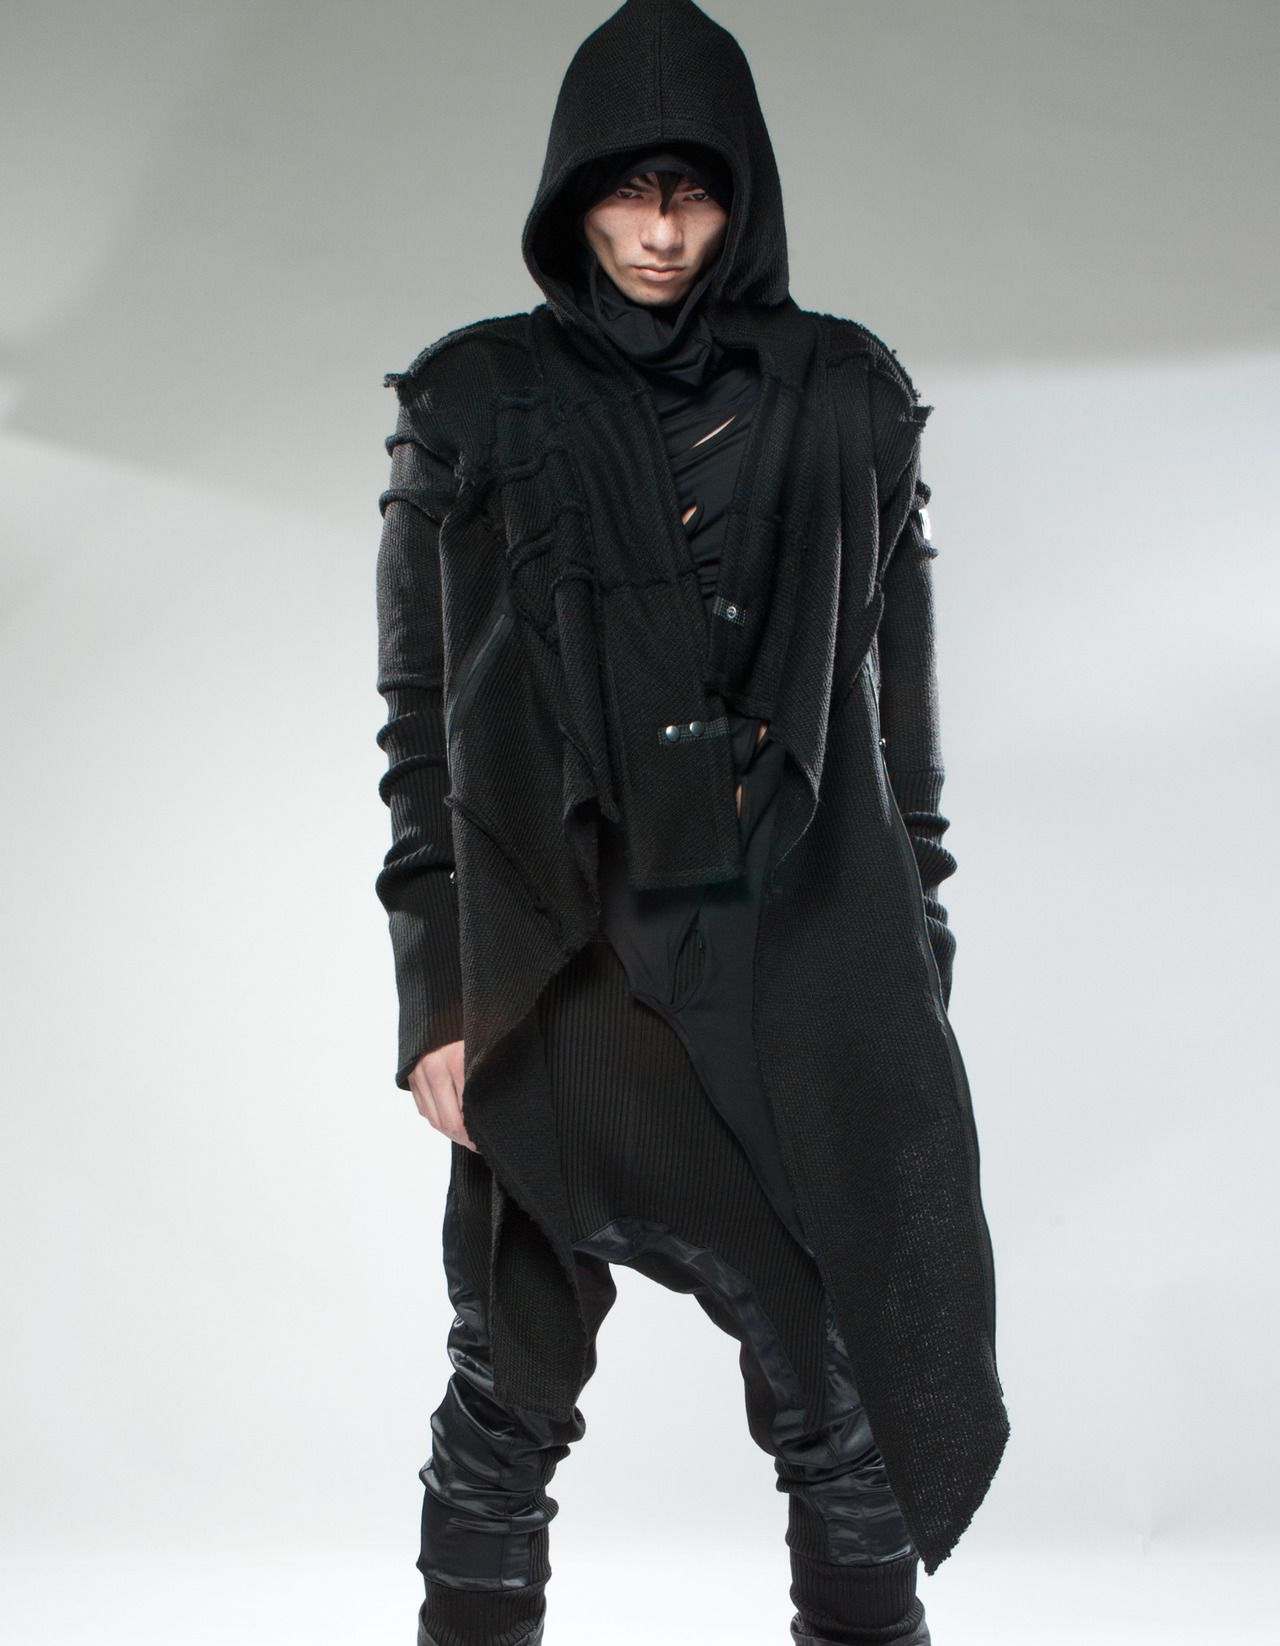 Male Cyberpunk Fashion | www.imgkid.com - The Image Kid ...